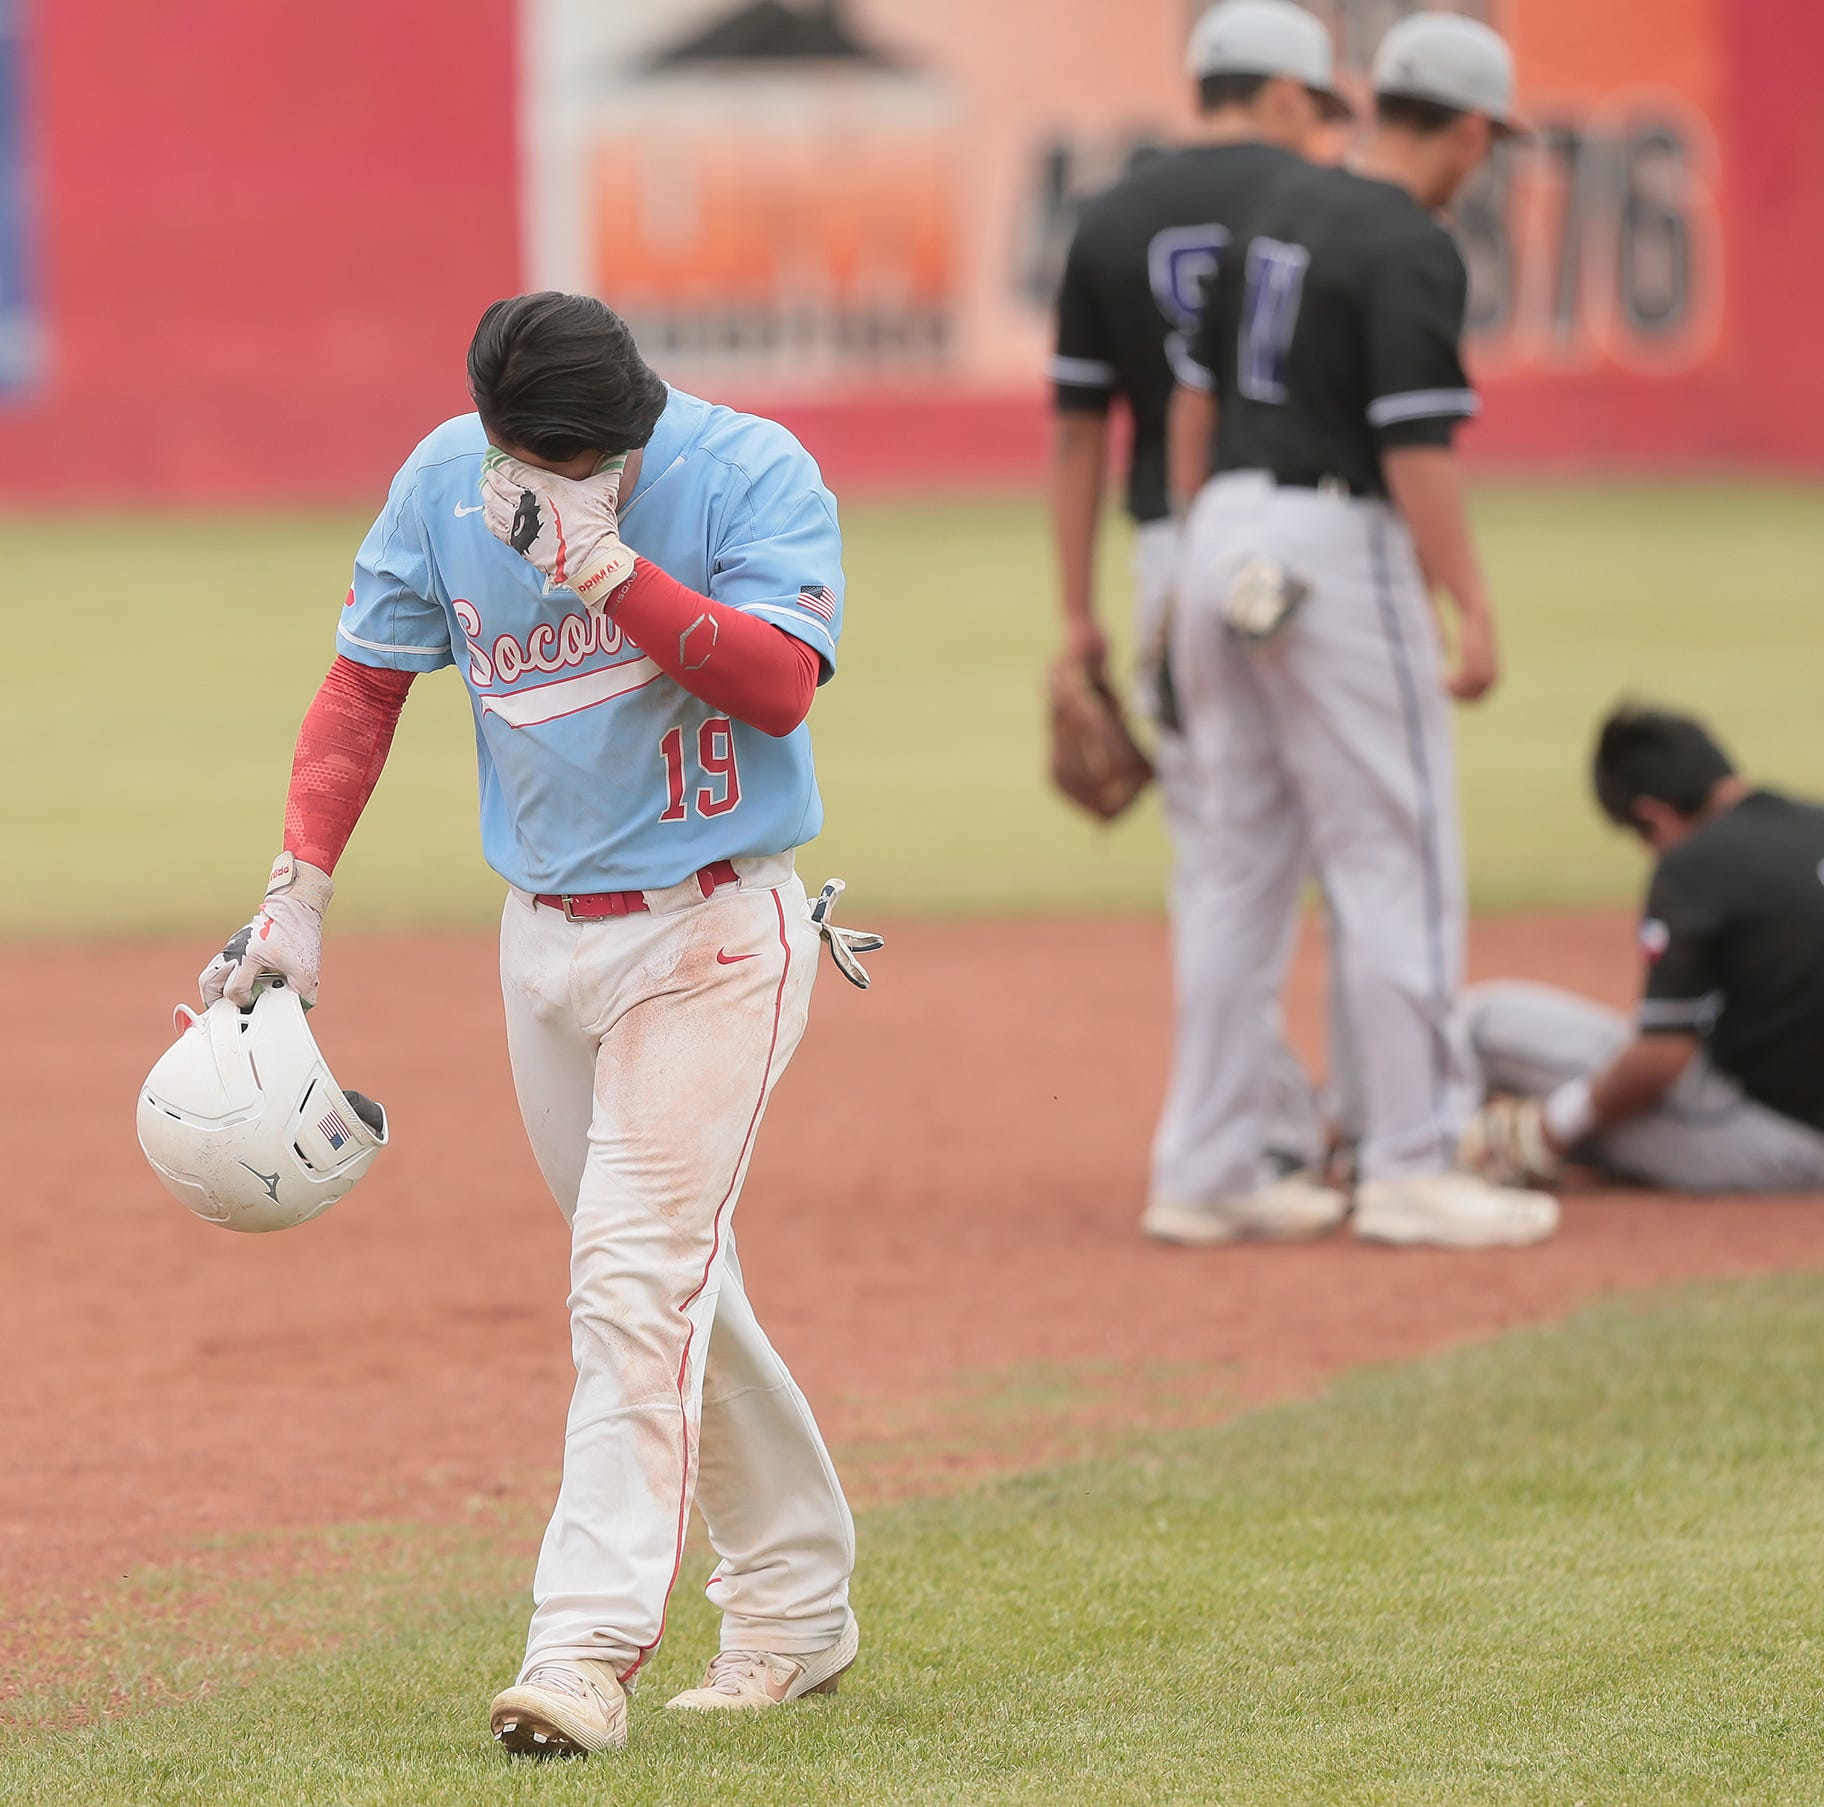 Socorro base runner Gerardo Contreras walks back to the dugout shook up after colliding with Franklin second baseman Eddie Rodriguez Friday.